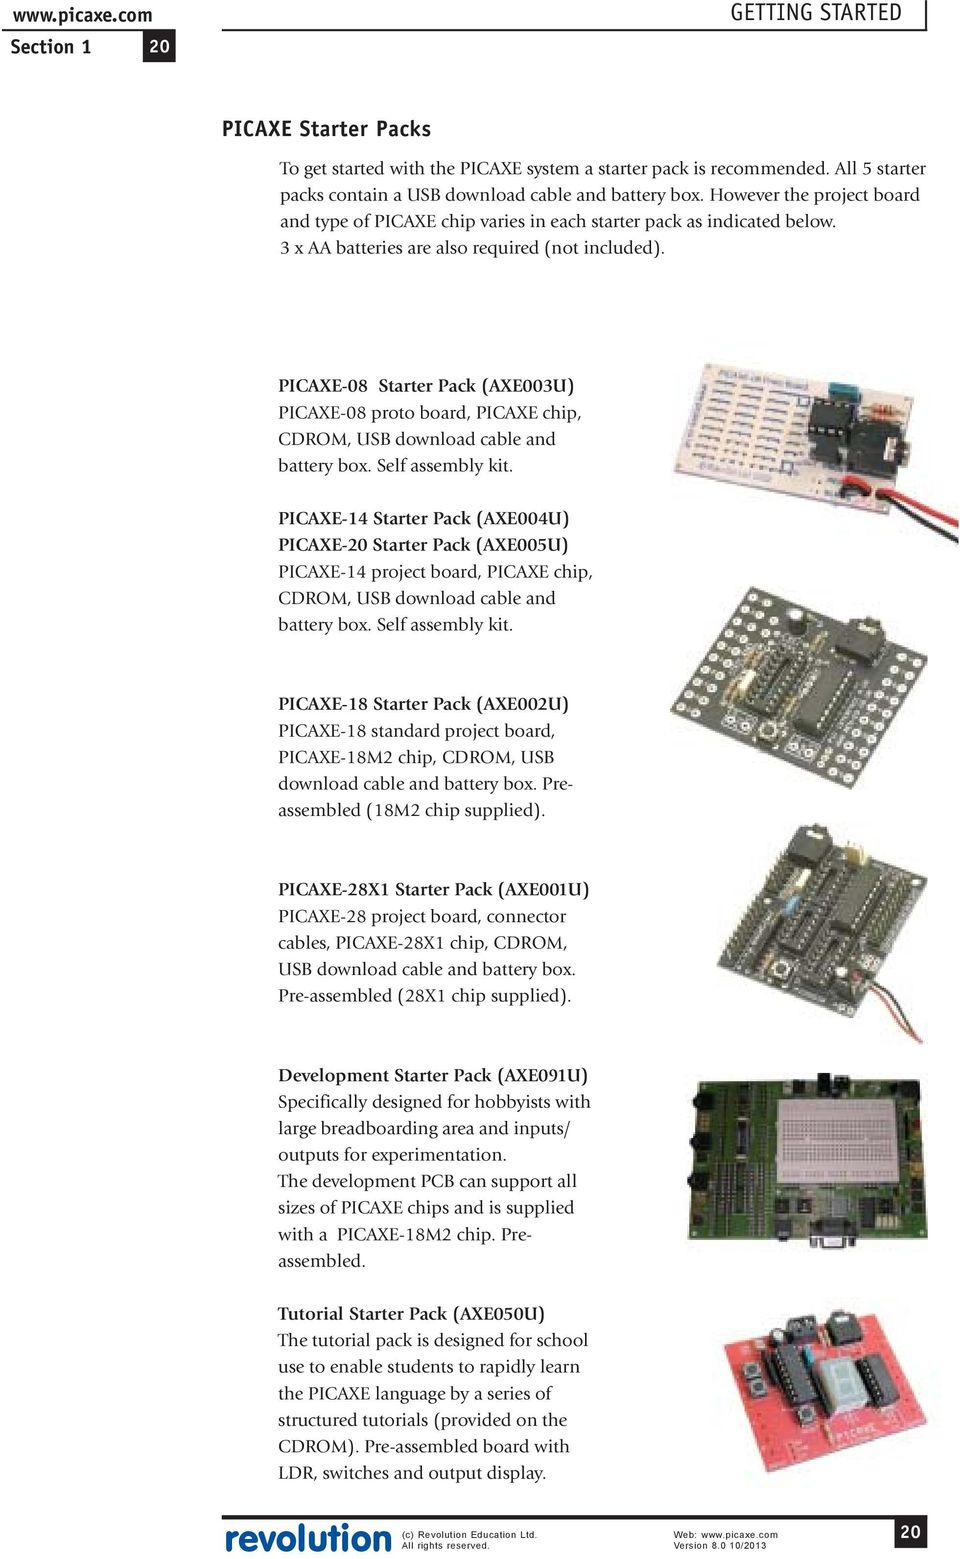 Picaxe Manual Pdf Stripboard Relay Shield Circuit Diagram Click For A Bigger Image 08 Starter Pack Axe003u Proto Board Chip